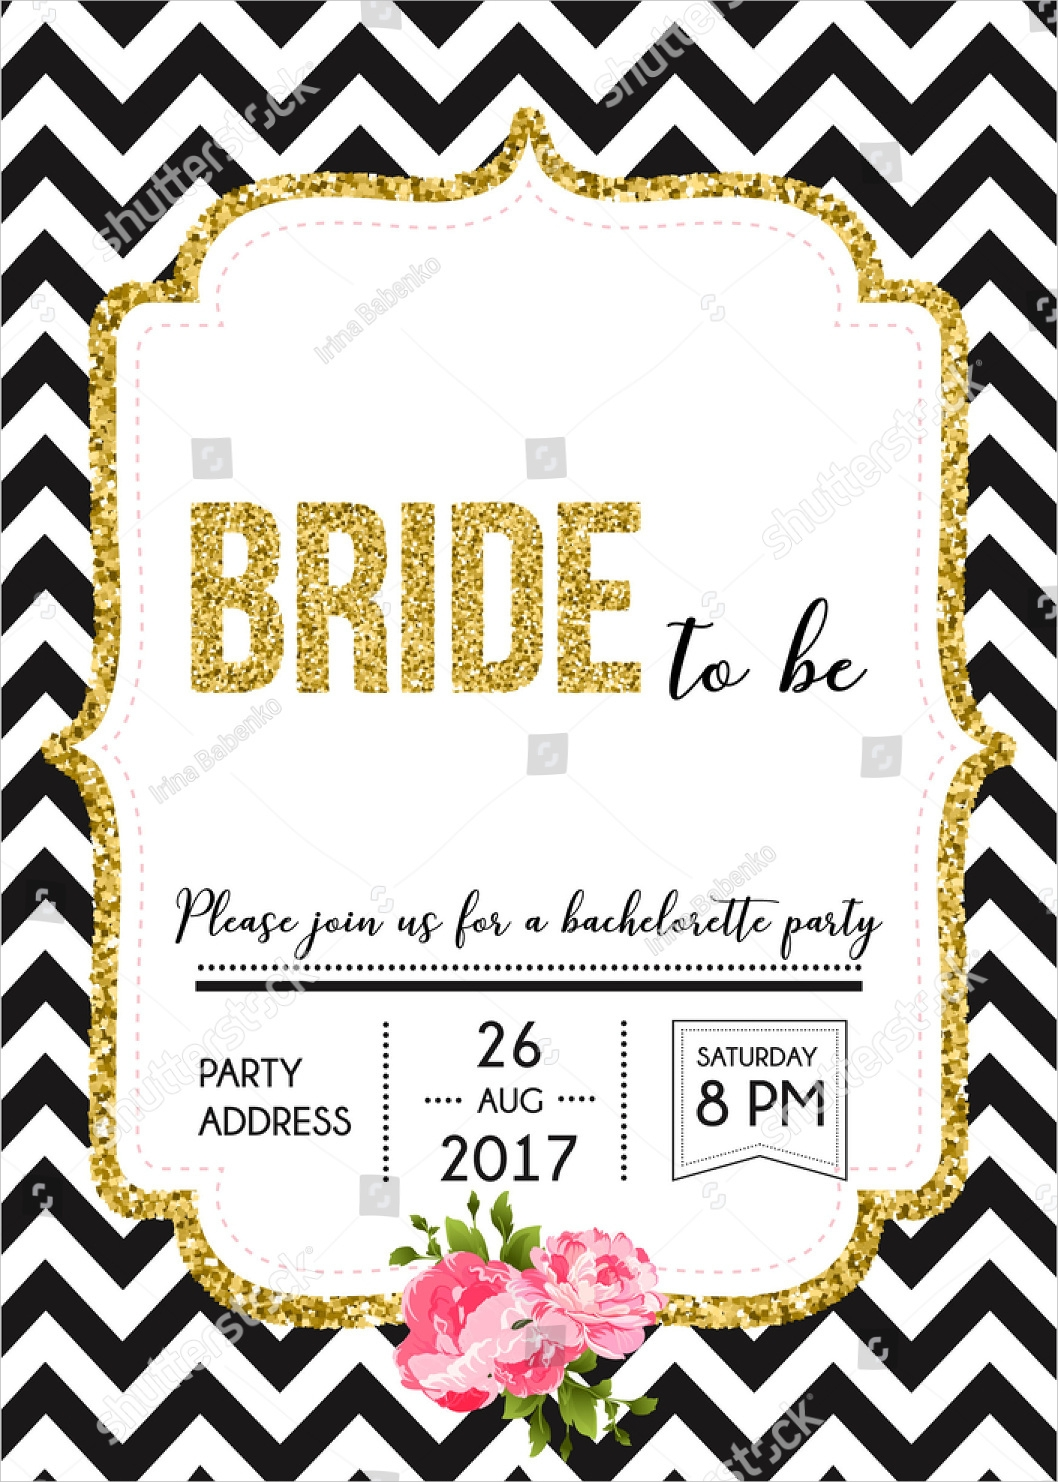 bride bachelorette party invitation